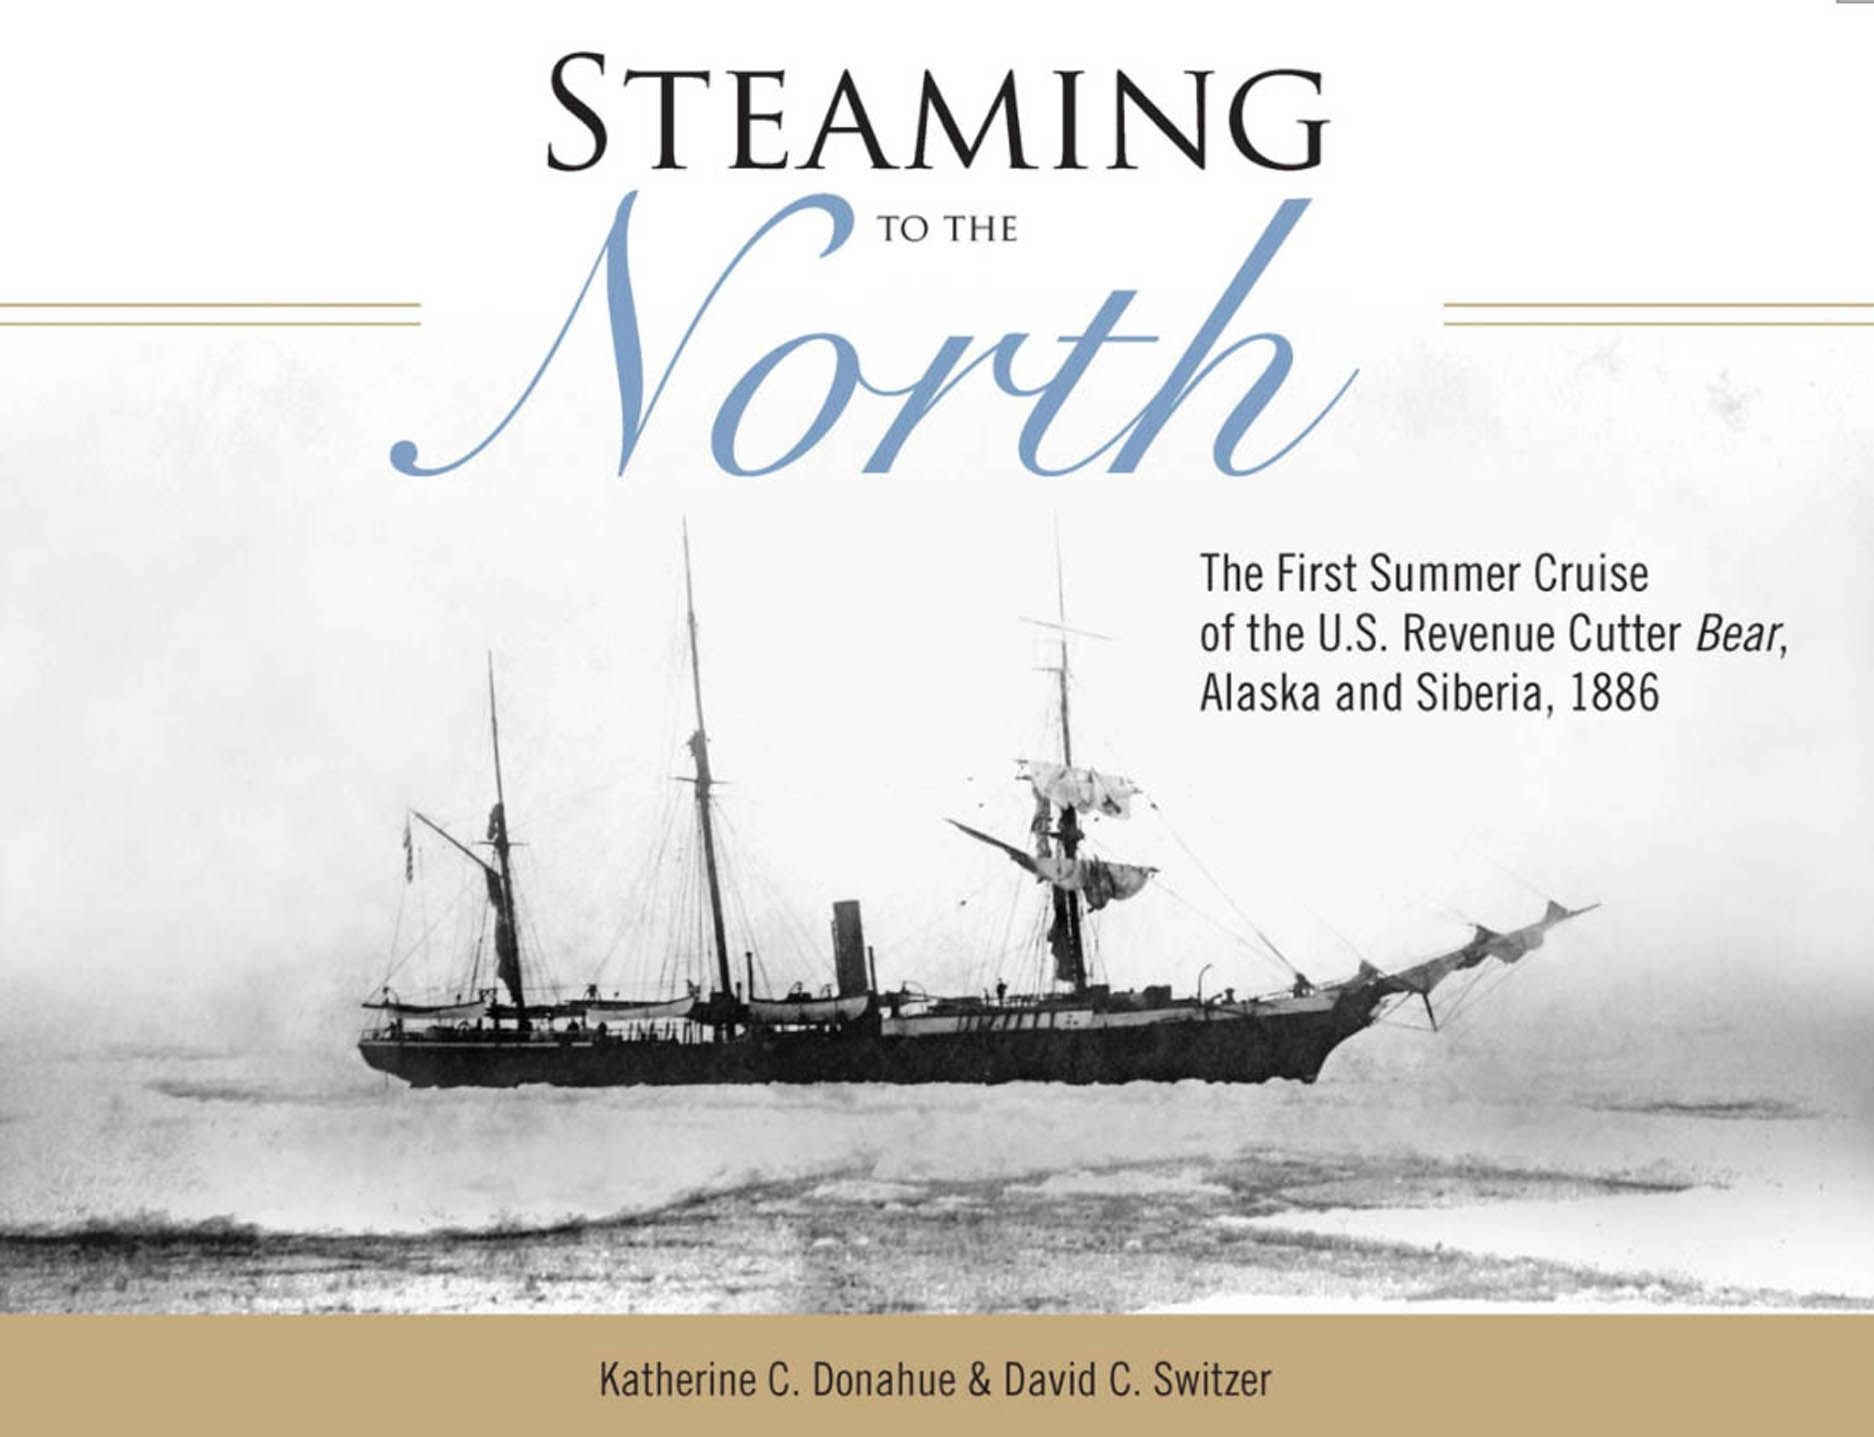 Steaming to the North: The First Summer Cruise of the US Revenue Cutter Bear, Alaska and Chukotka, Siberia, 1886